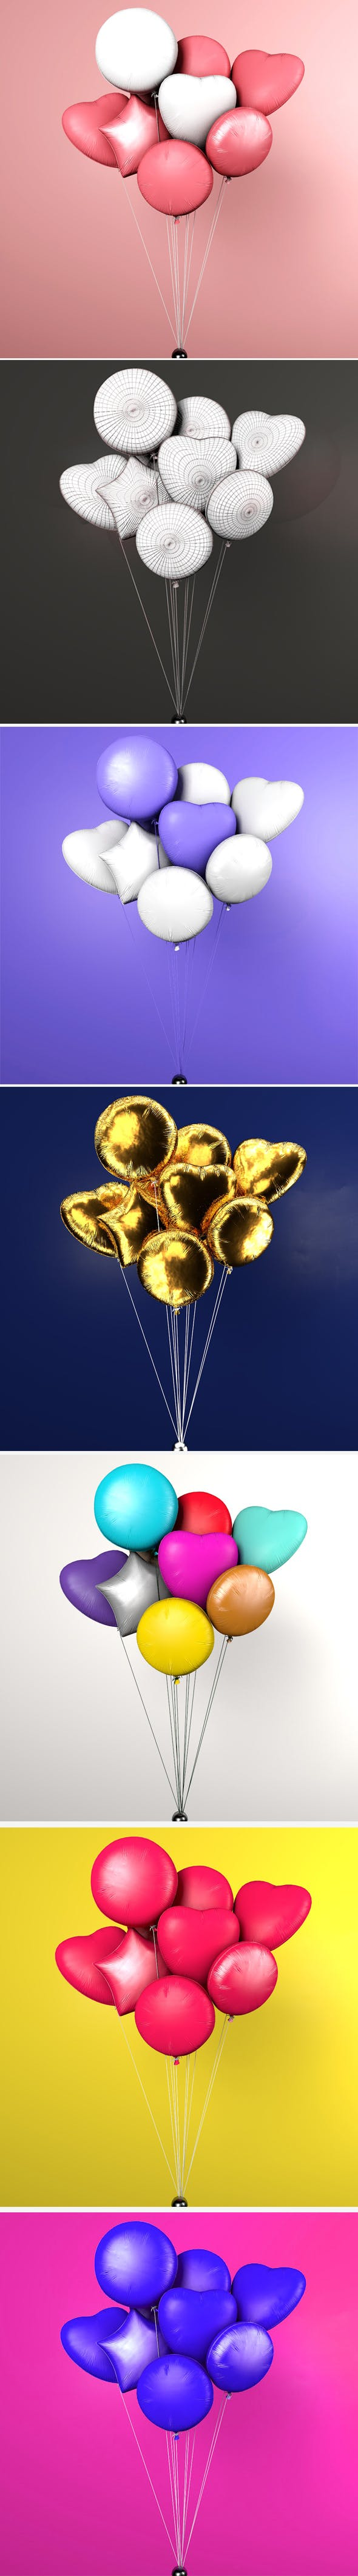 Balloons / 10 Colorful balloons - 3DOcean Item for Sale